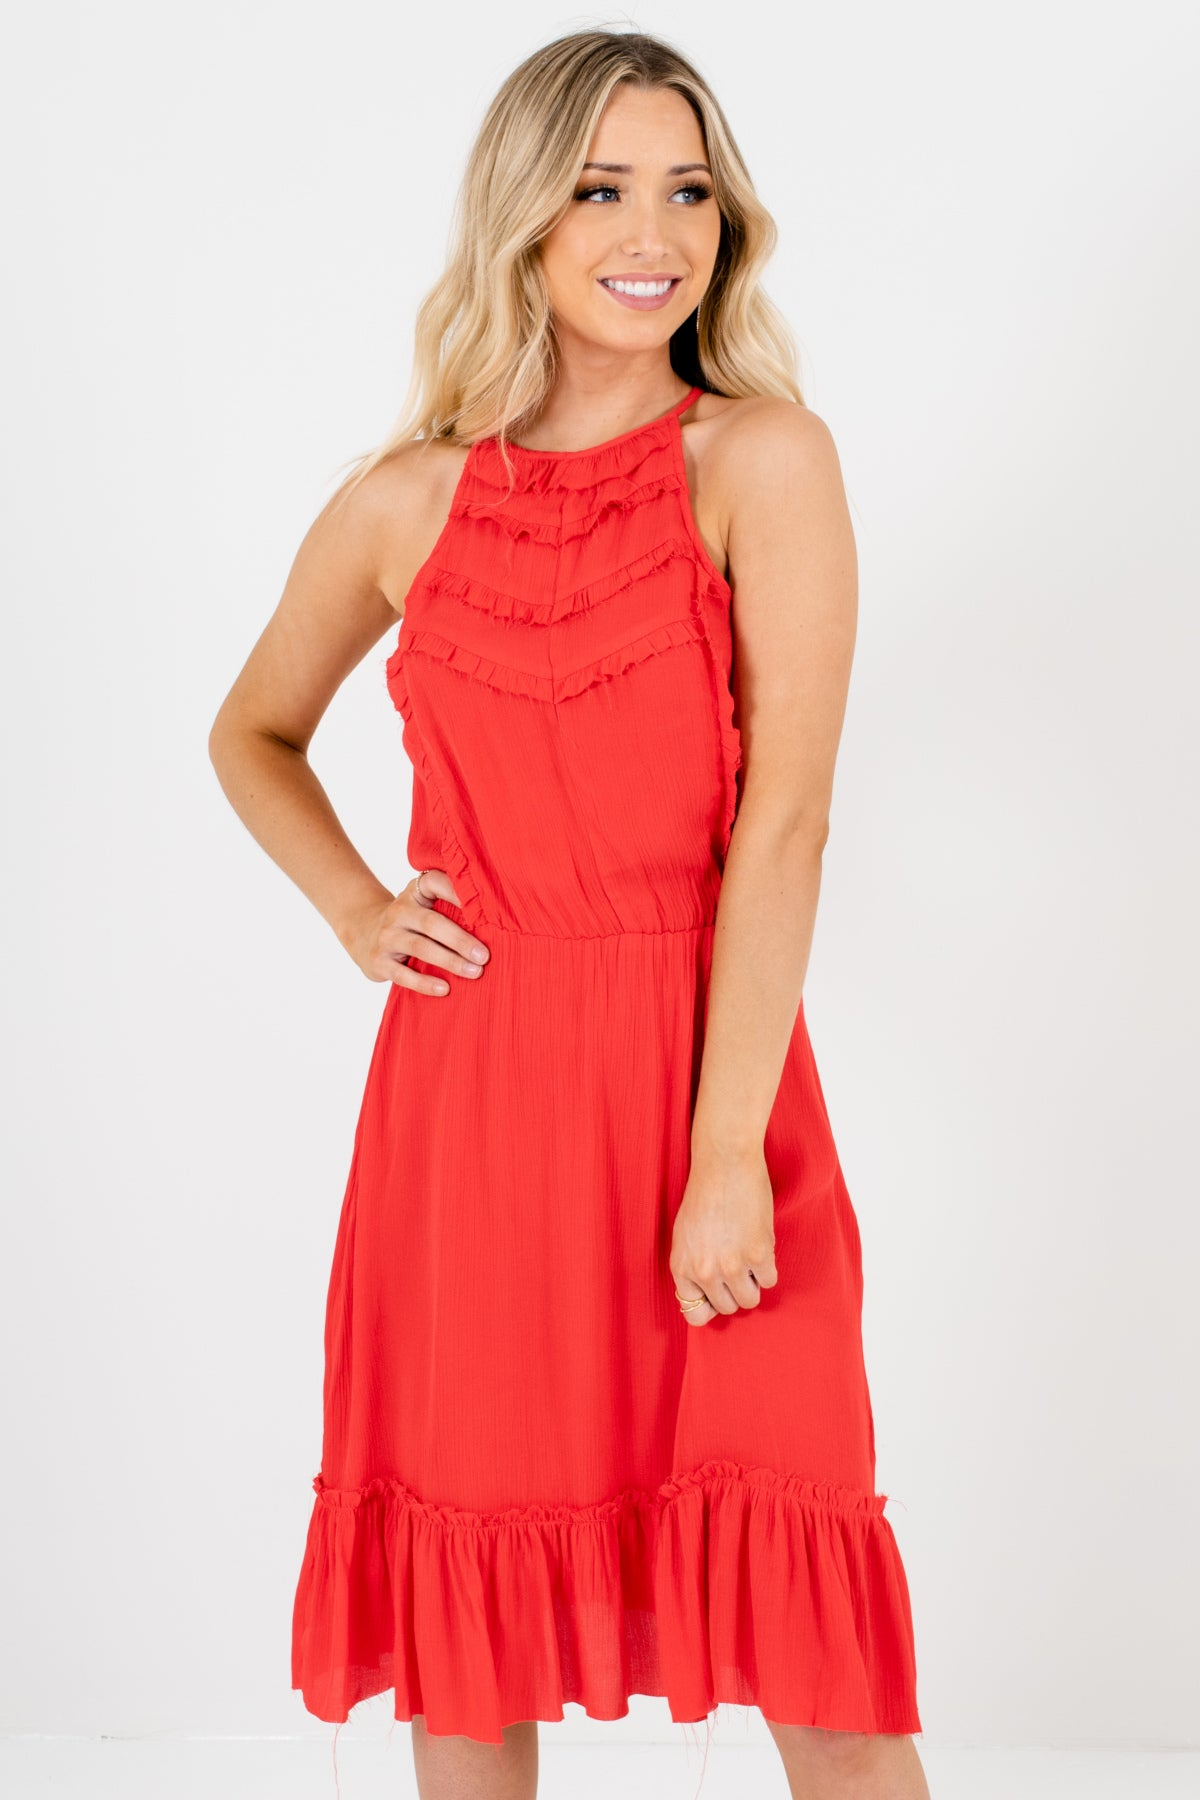 Bright Red Halter Frayed Ruffle Dresses Affordable Online Boutique